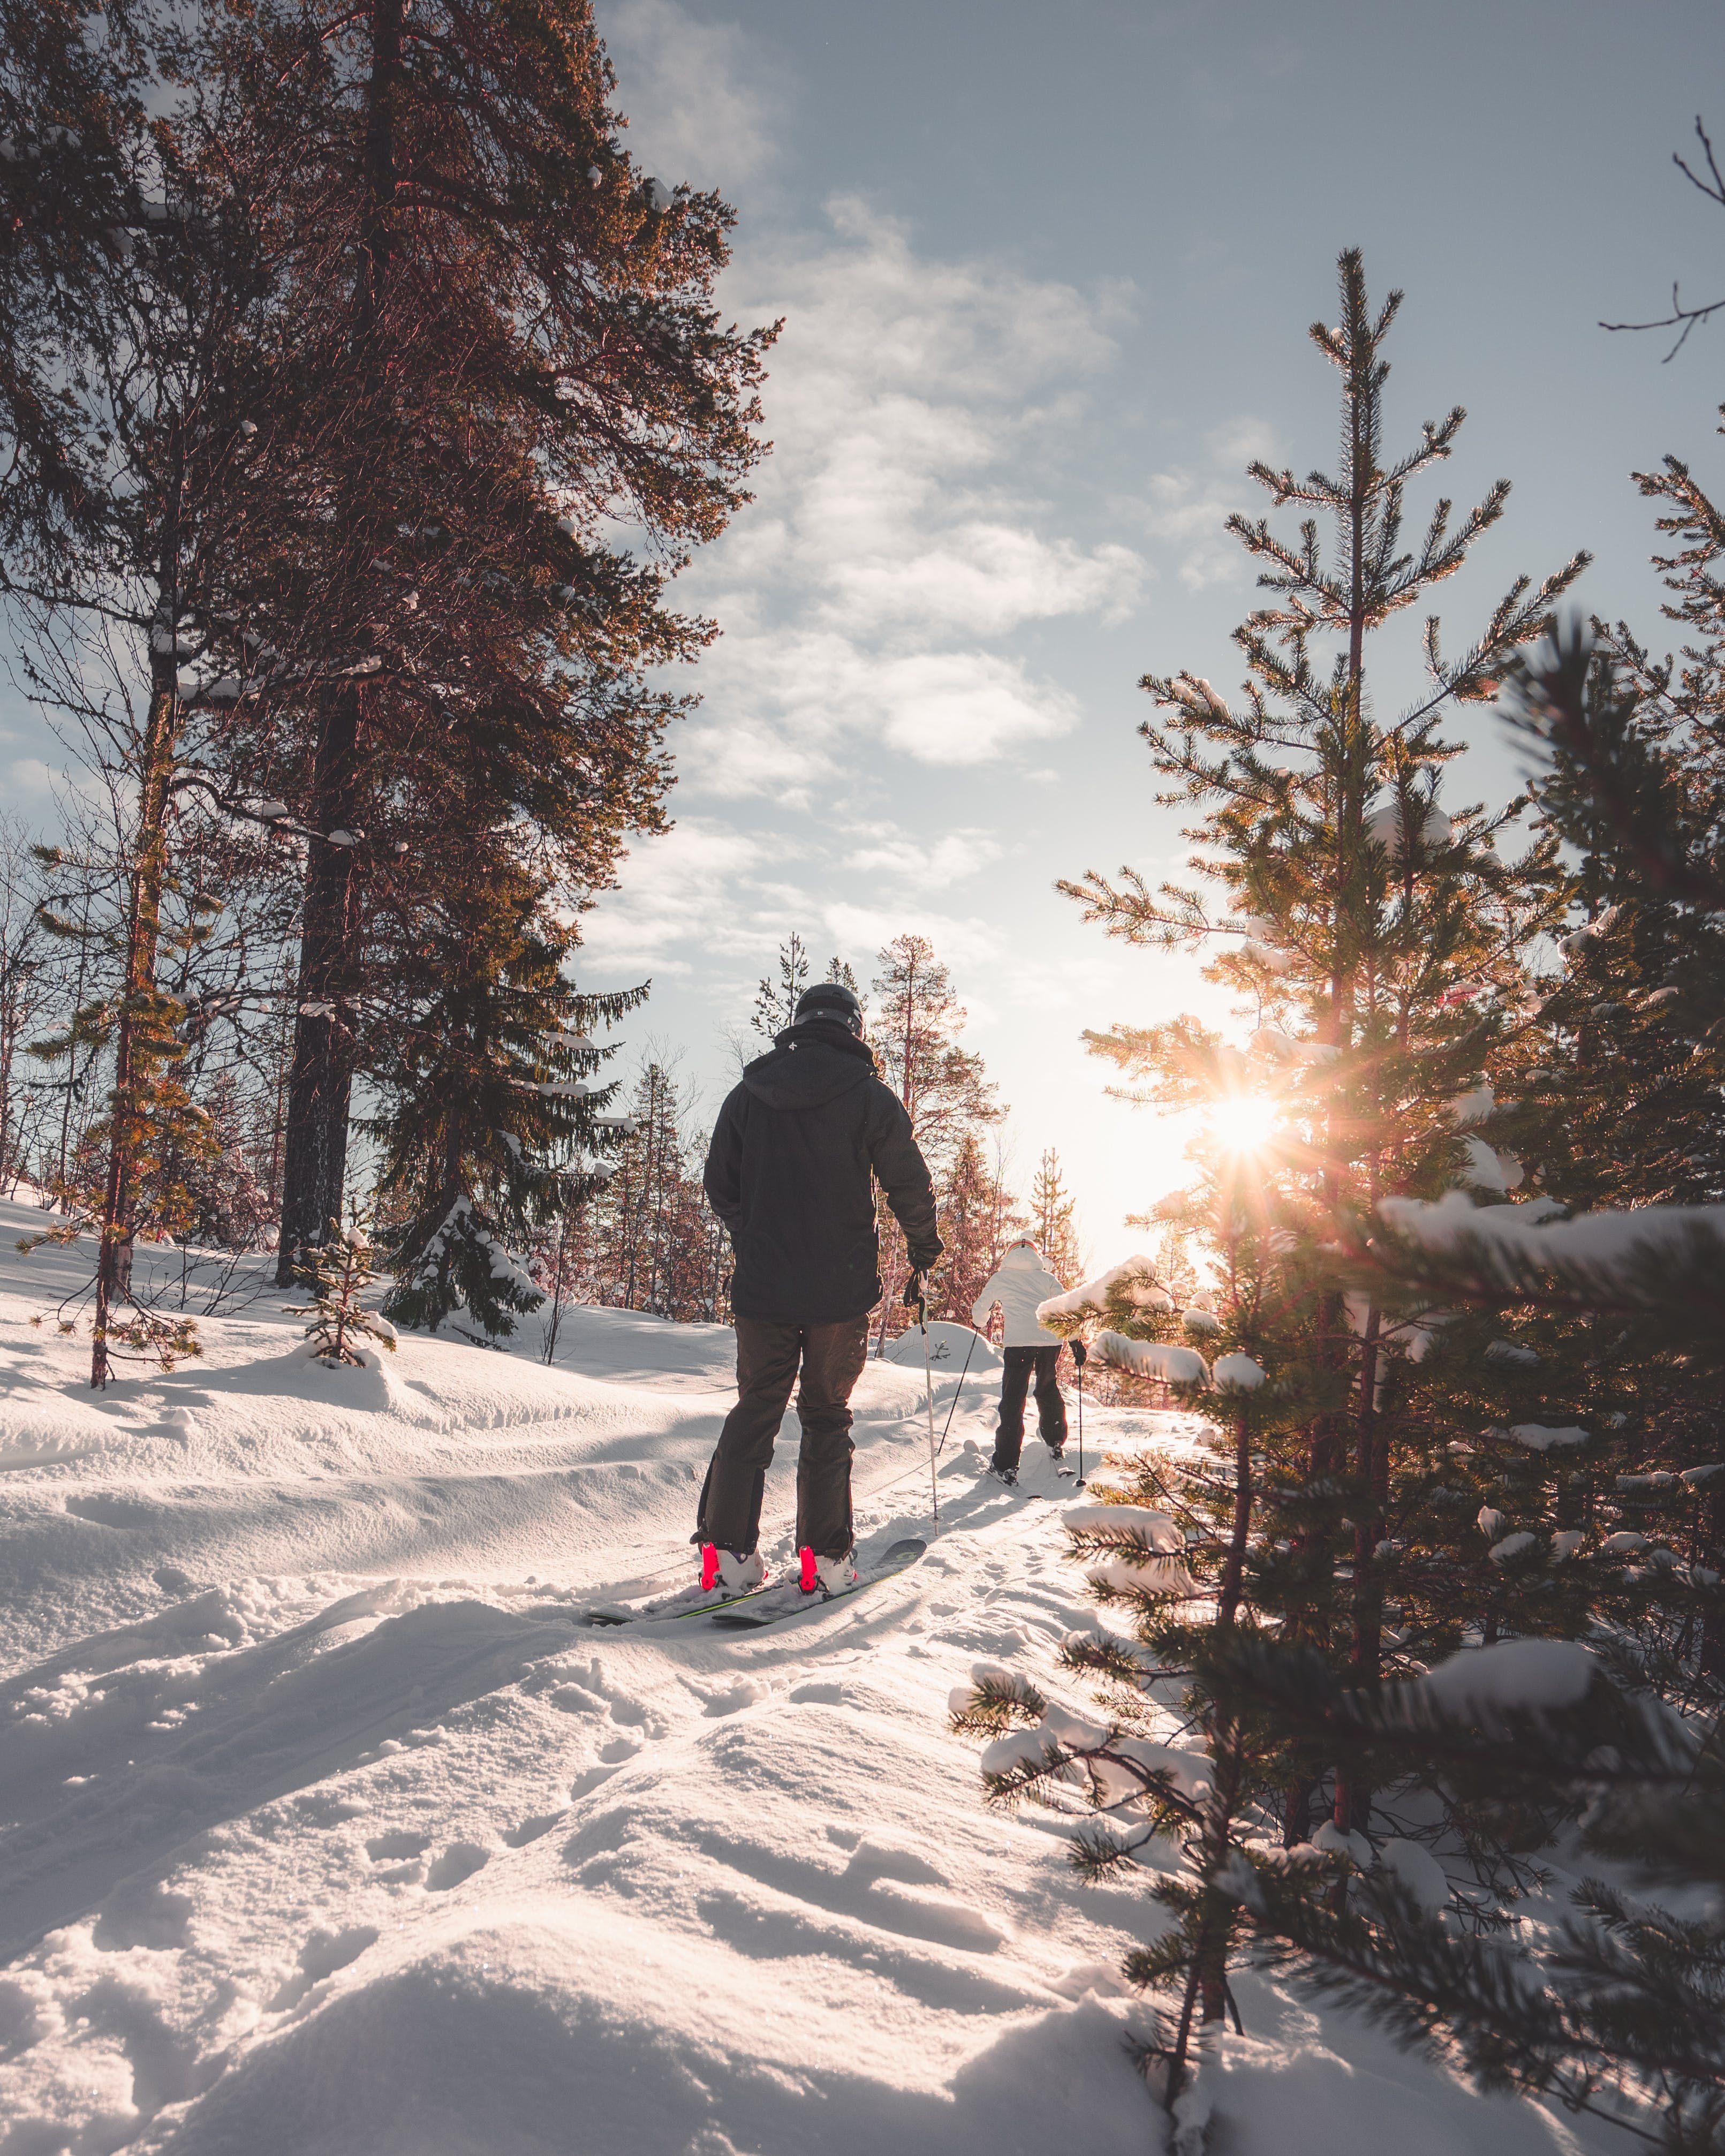 Two People on a Snow Trail